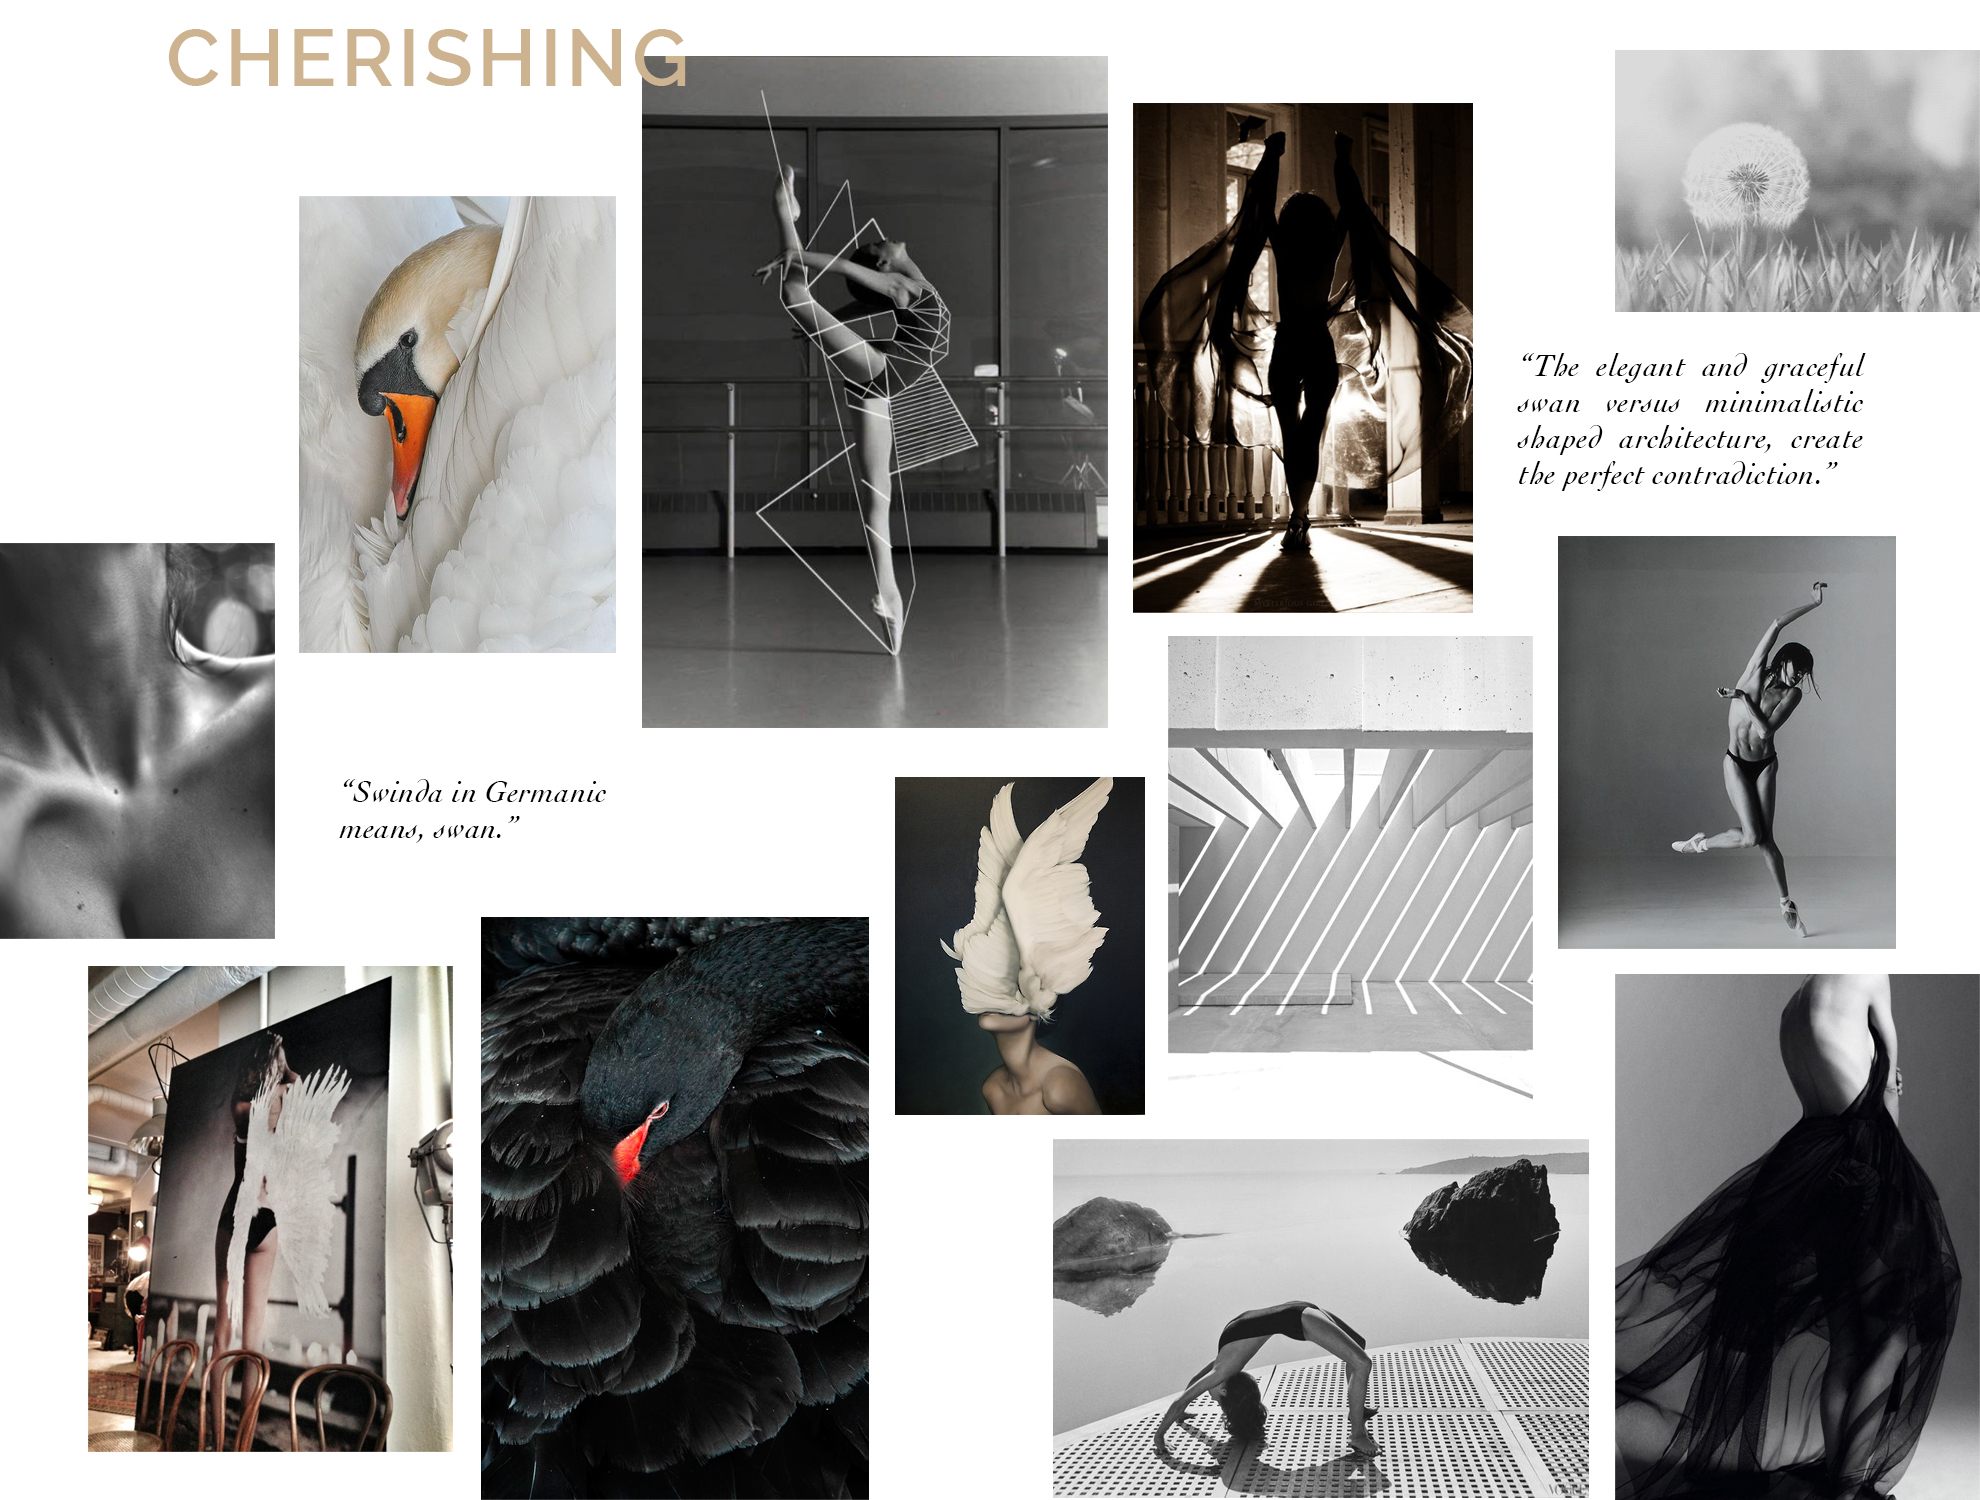 SvD-Cherishing-inspiration